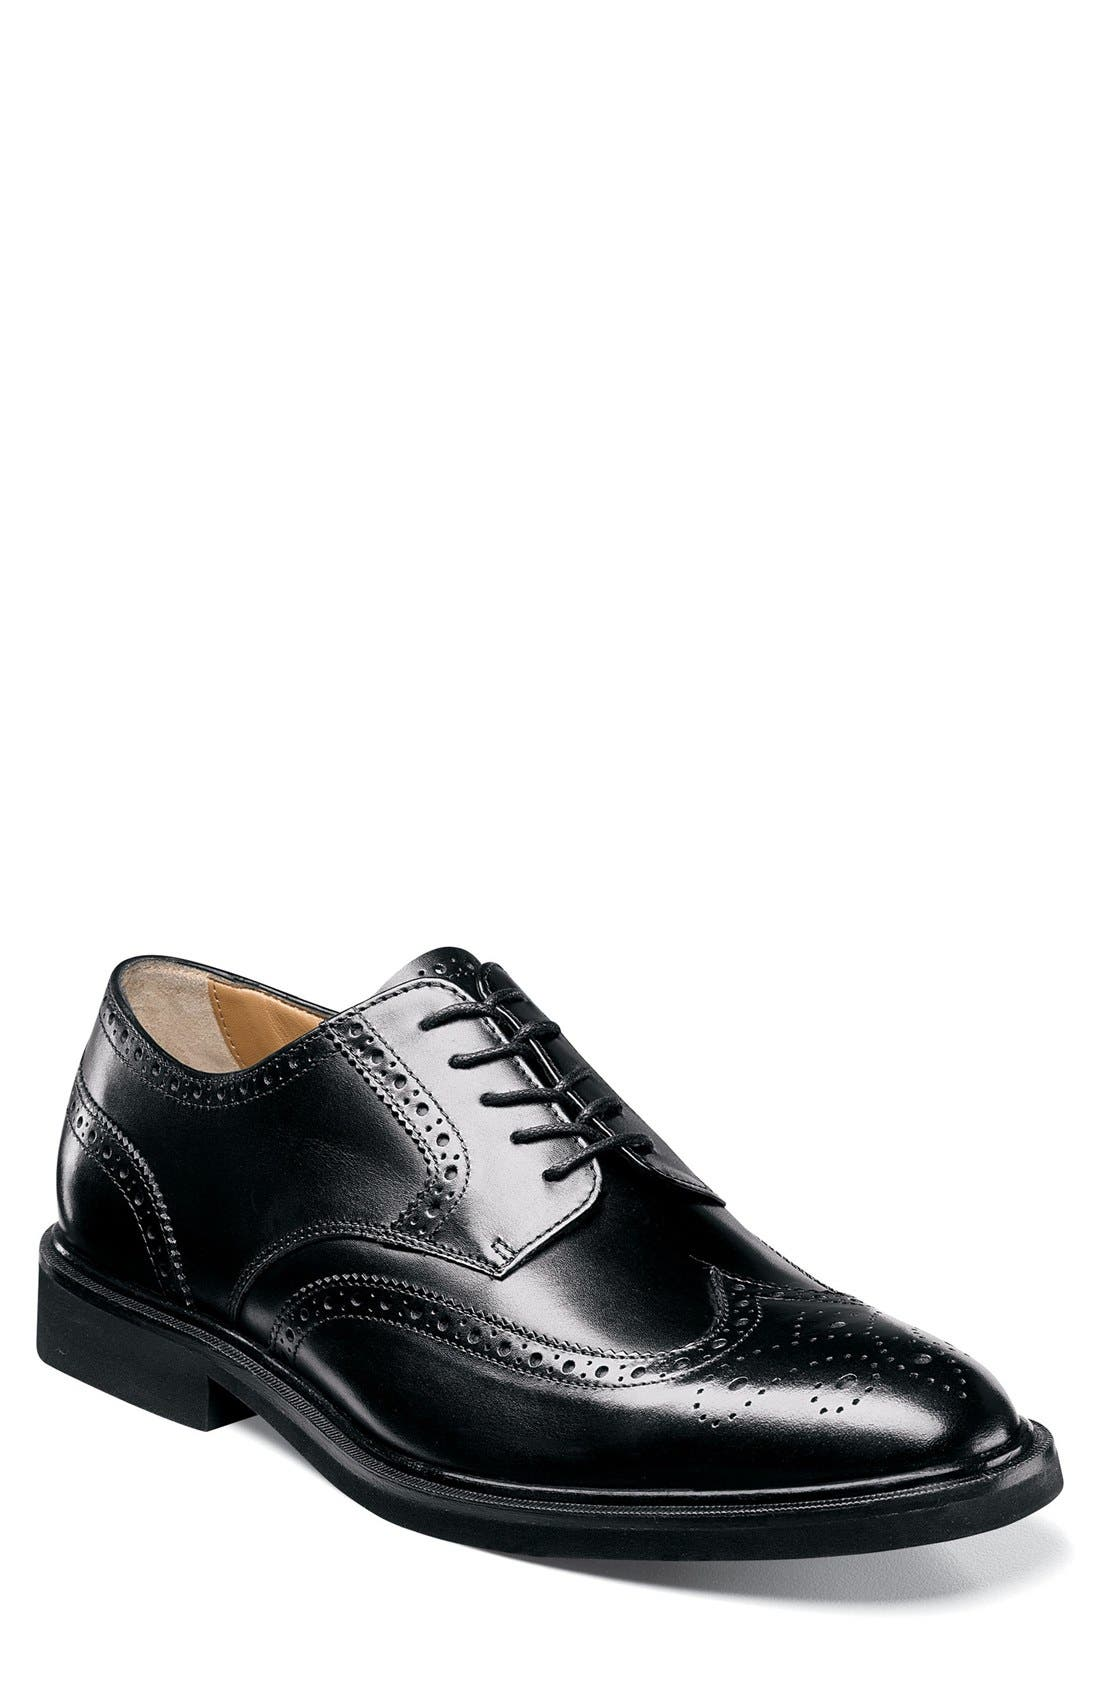 Hamilton Wingtip,                         Main,                         color, 001